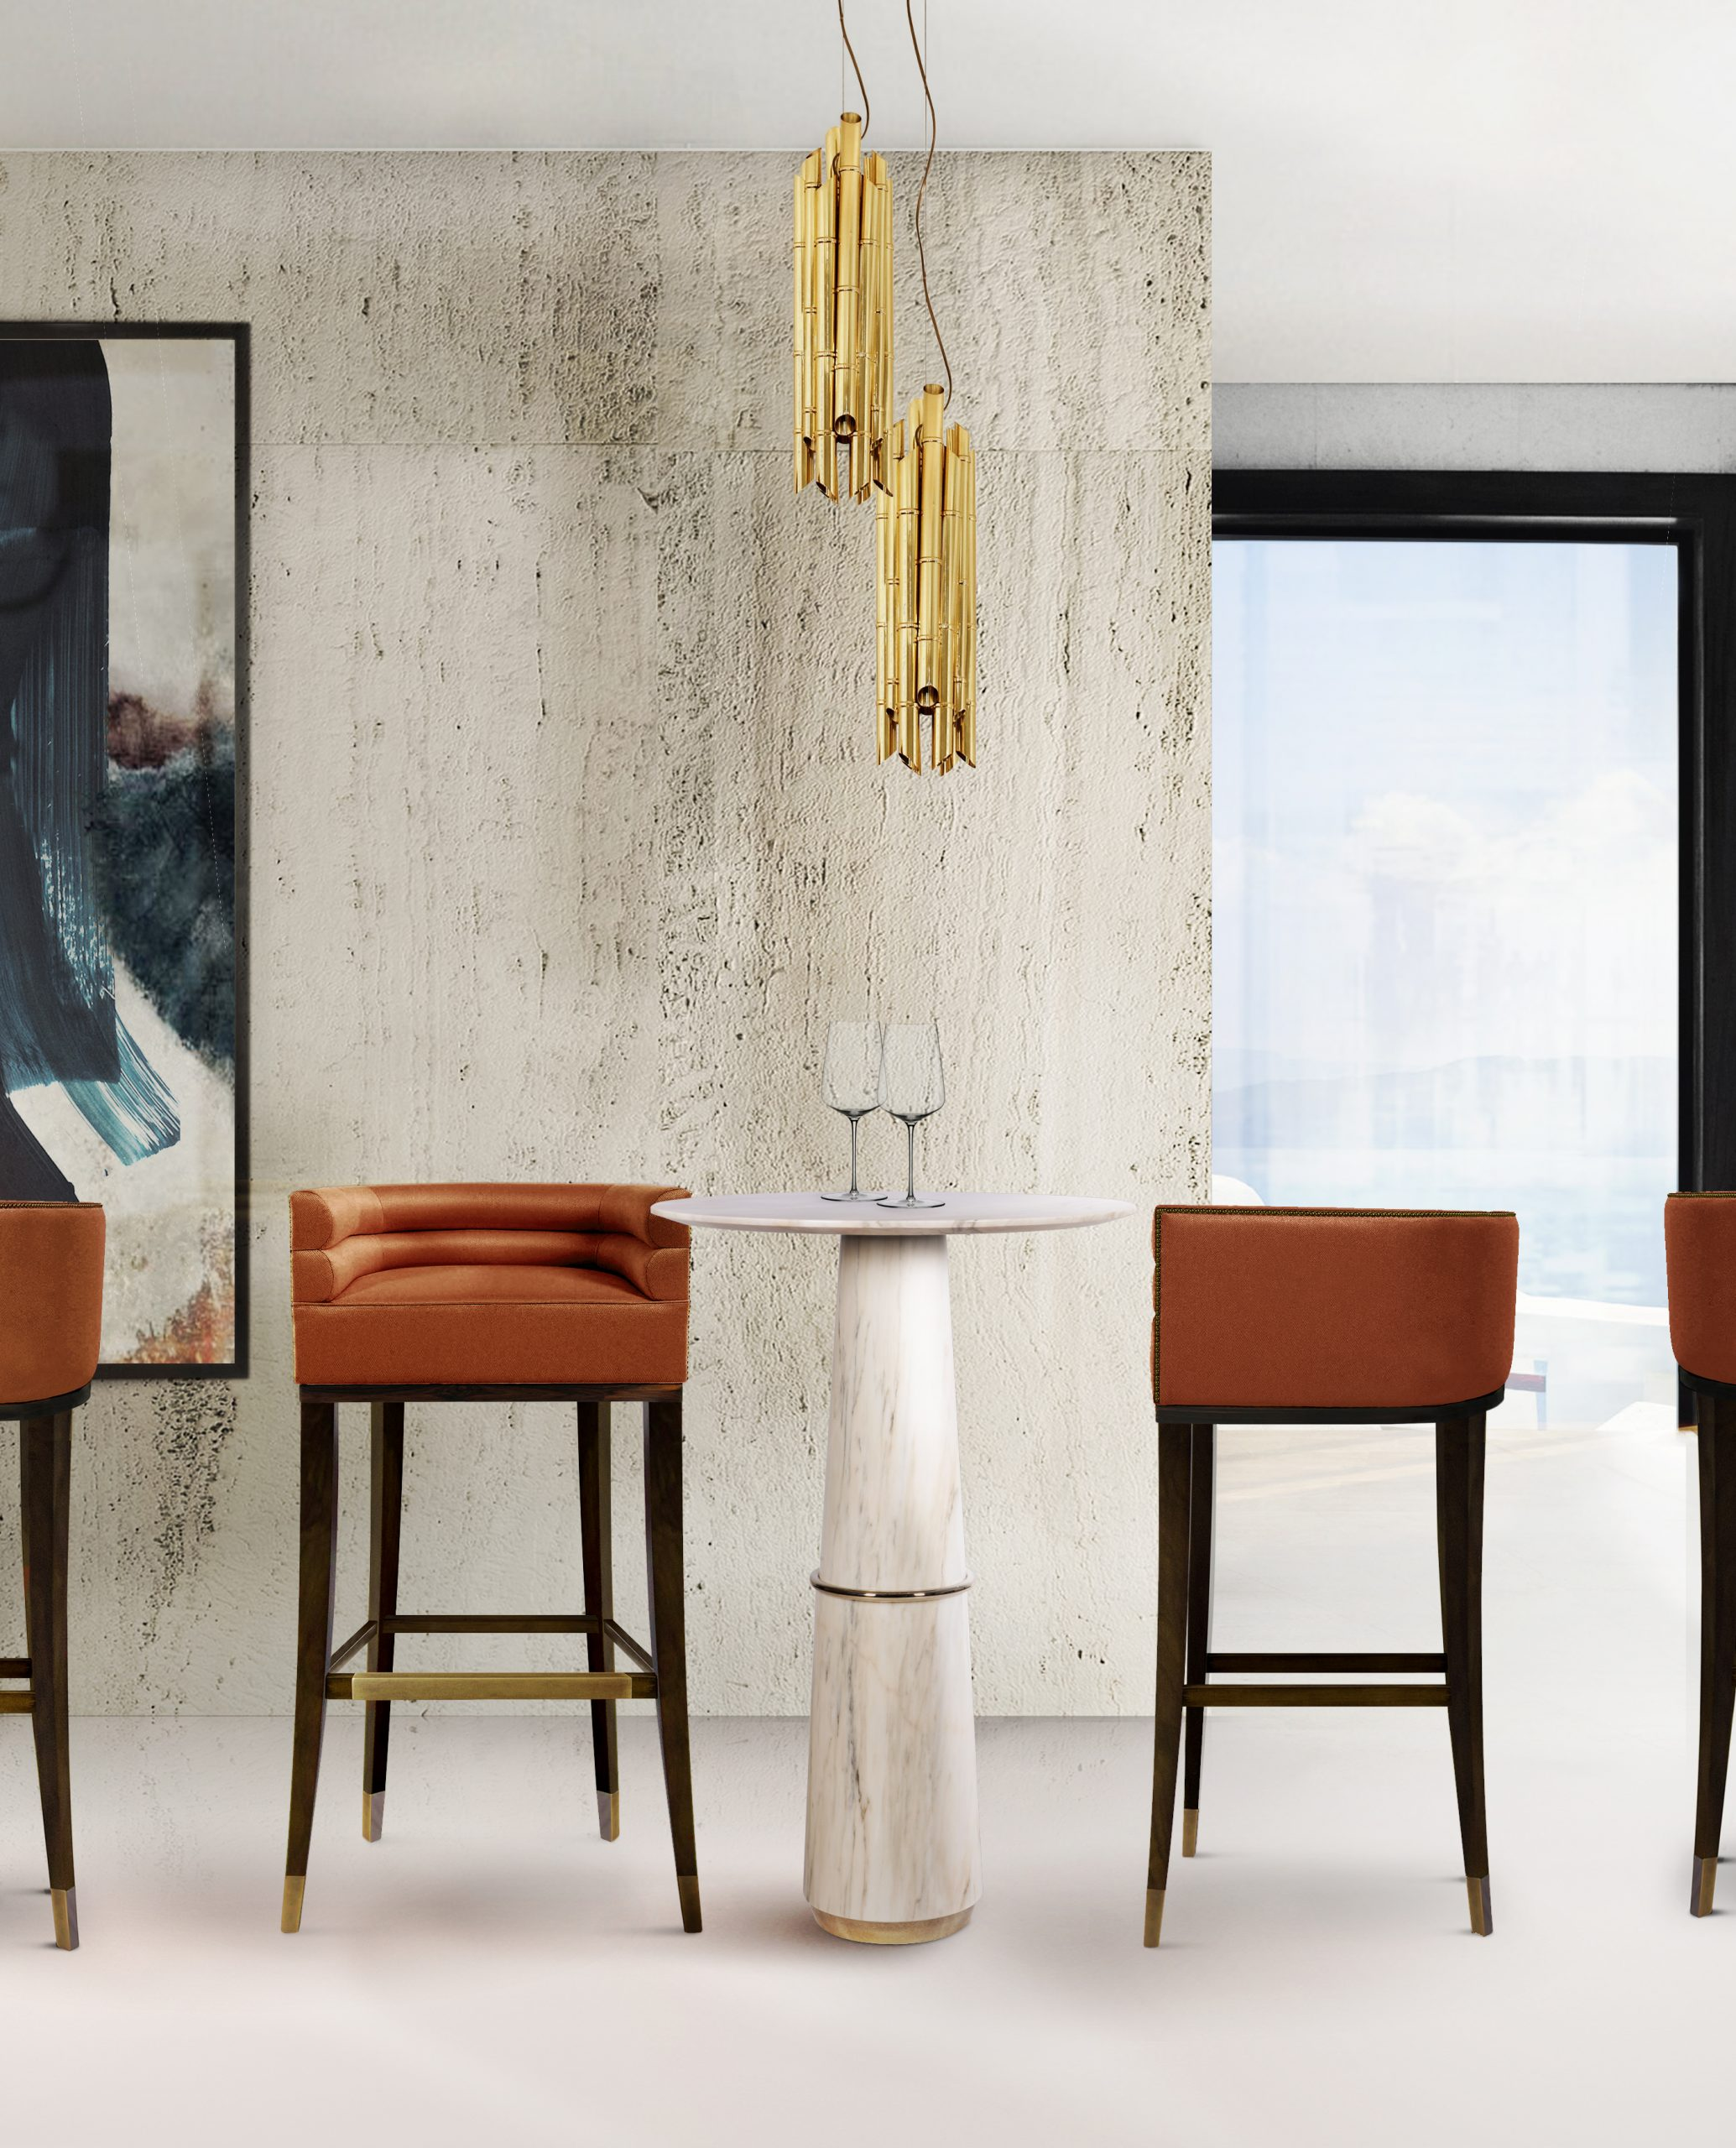 20 Stylish Dining Seating Options For Modern Hotels dining seating 20 Stylish Dining Seating Options For Modern Hotels 20 Stylish Dining Seating Options For Modern Hotels 19 scaled